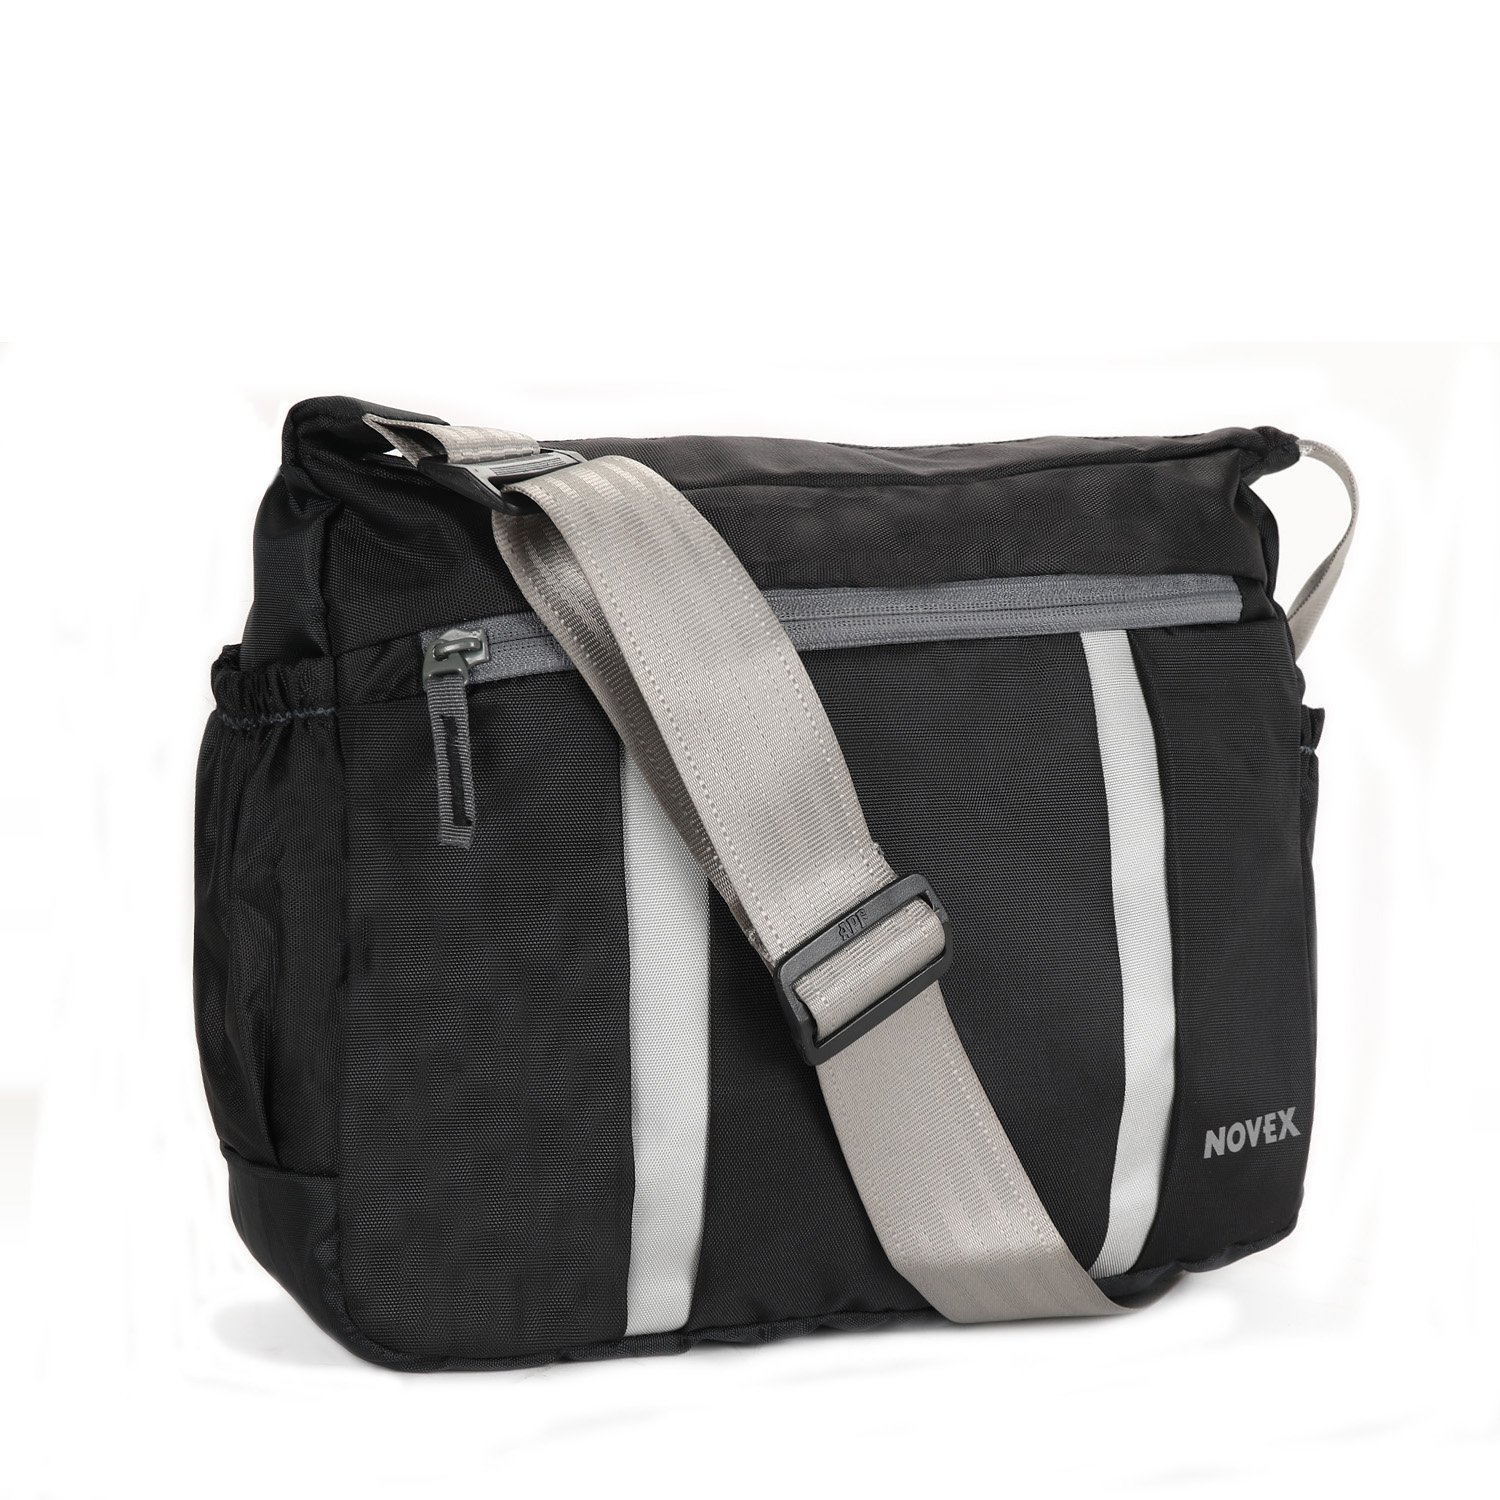 316d47a3d Buy Novex Evoq Polyester Sling Bag(Black) Online at Low Prices in India -  Amazon.in